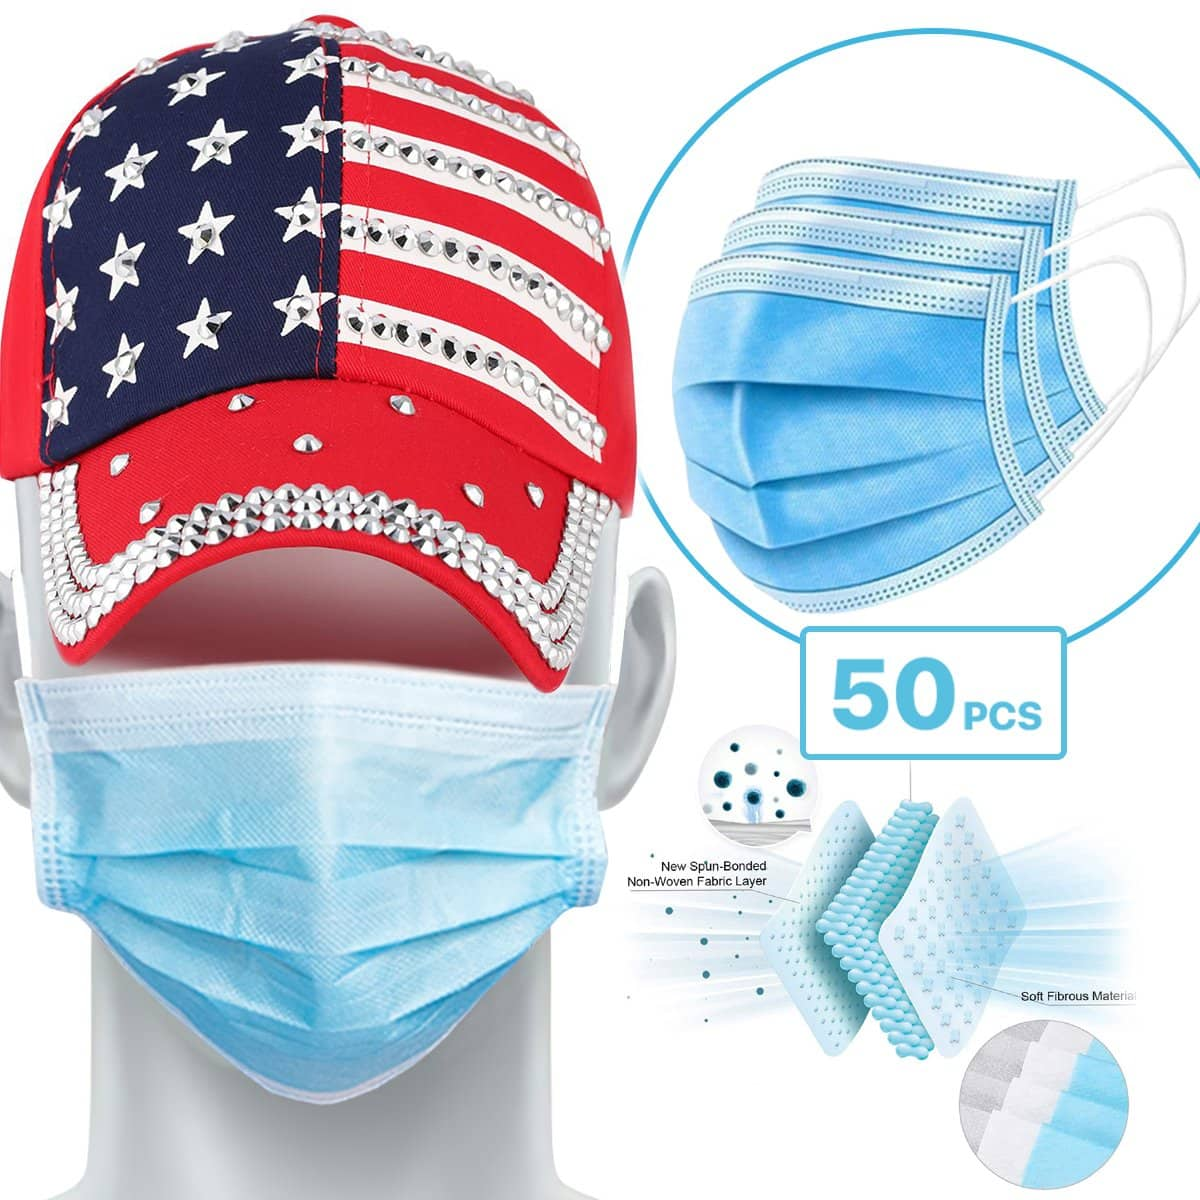 50-Count 3-Ply Disposable Face Masks $3.99